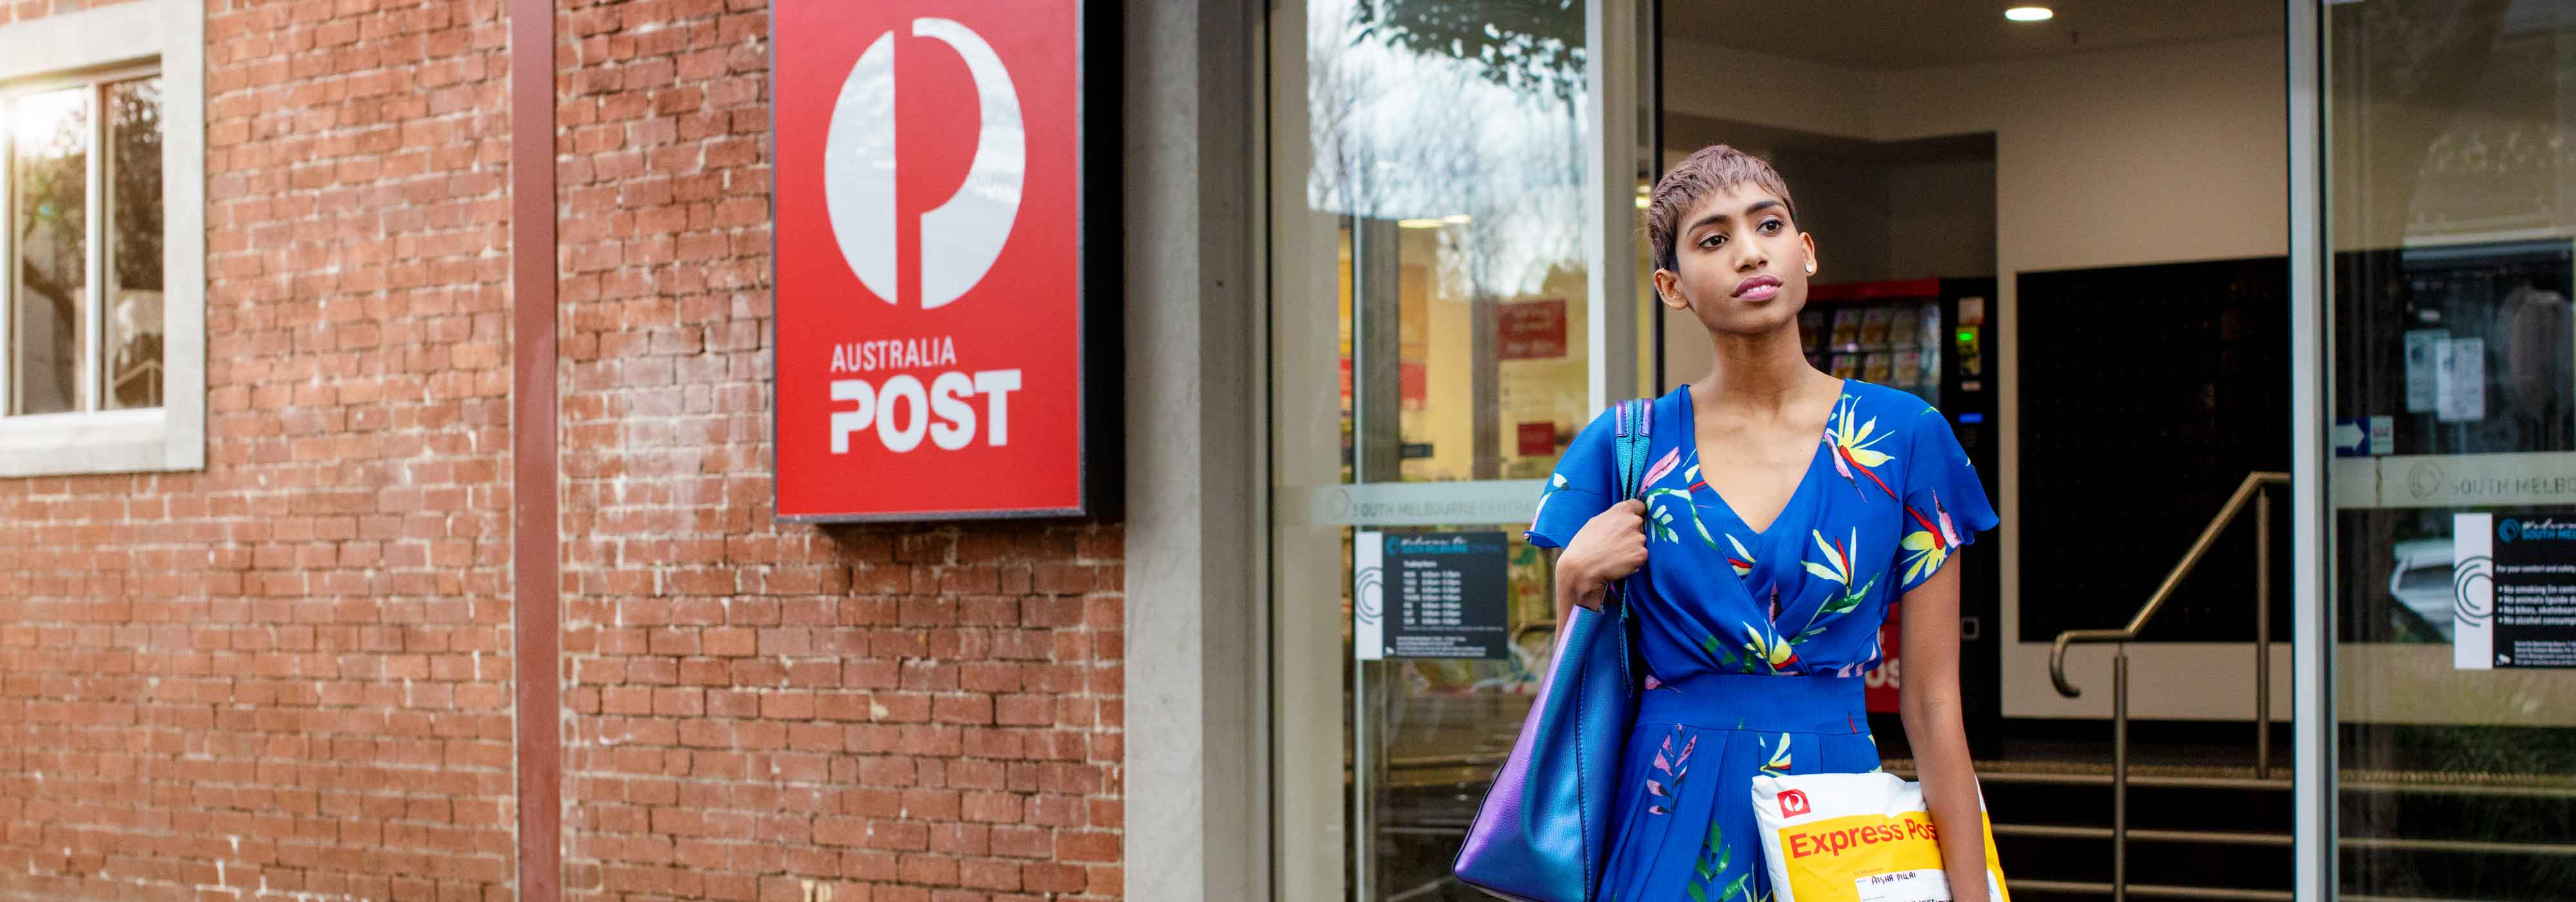 Choose a Post Office for deliveries - Australia Post